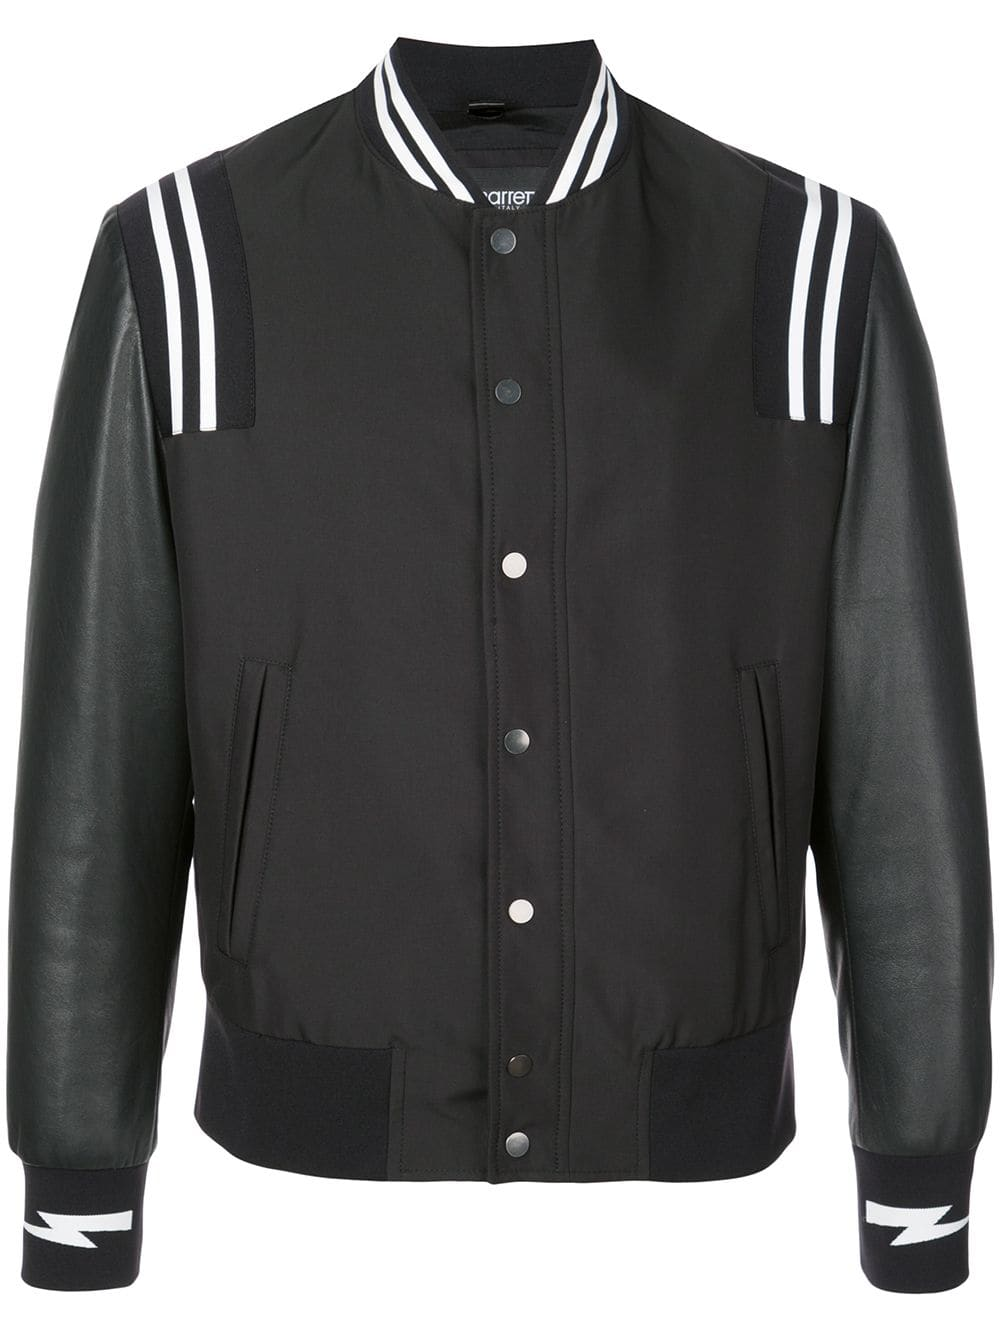 Neil Barrett stripe detail bomber jacket | Neil Barrett